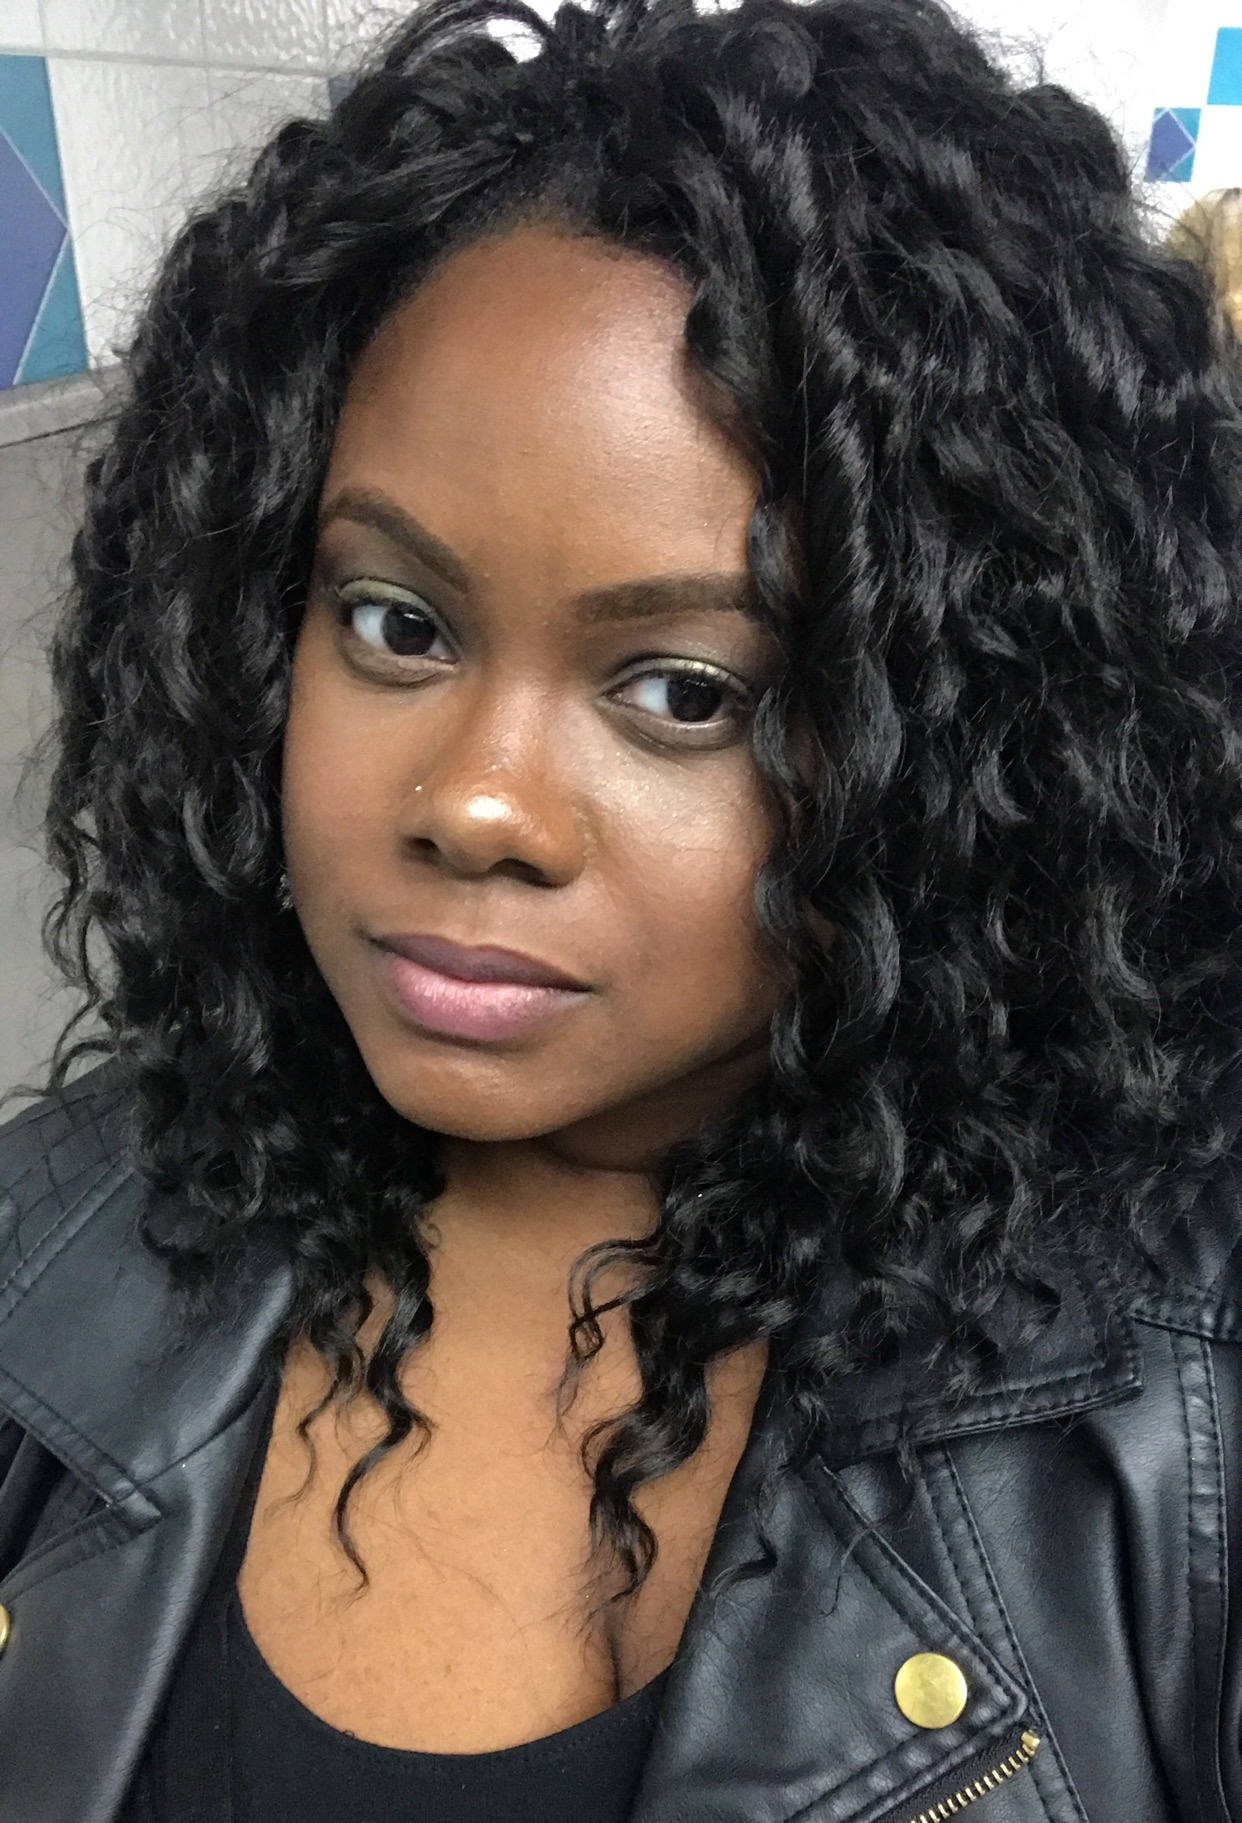 Dee - A girl with a house…well, a girl who lived in a house with a mother that shared her love of true crime with Dee. Dee has a passion for mental health and that's what led her to receive her degree in social work. She has been working in the mental health field for over 12 years and hasn't lost that fire yet.She's back in school, studying clinical mental health, laying the ground work to one day open her own practice. She hopes to make you laugh while educating you on the connection between crime and mental health.Twitter/Instagram: @dee_light4